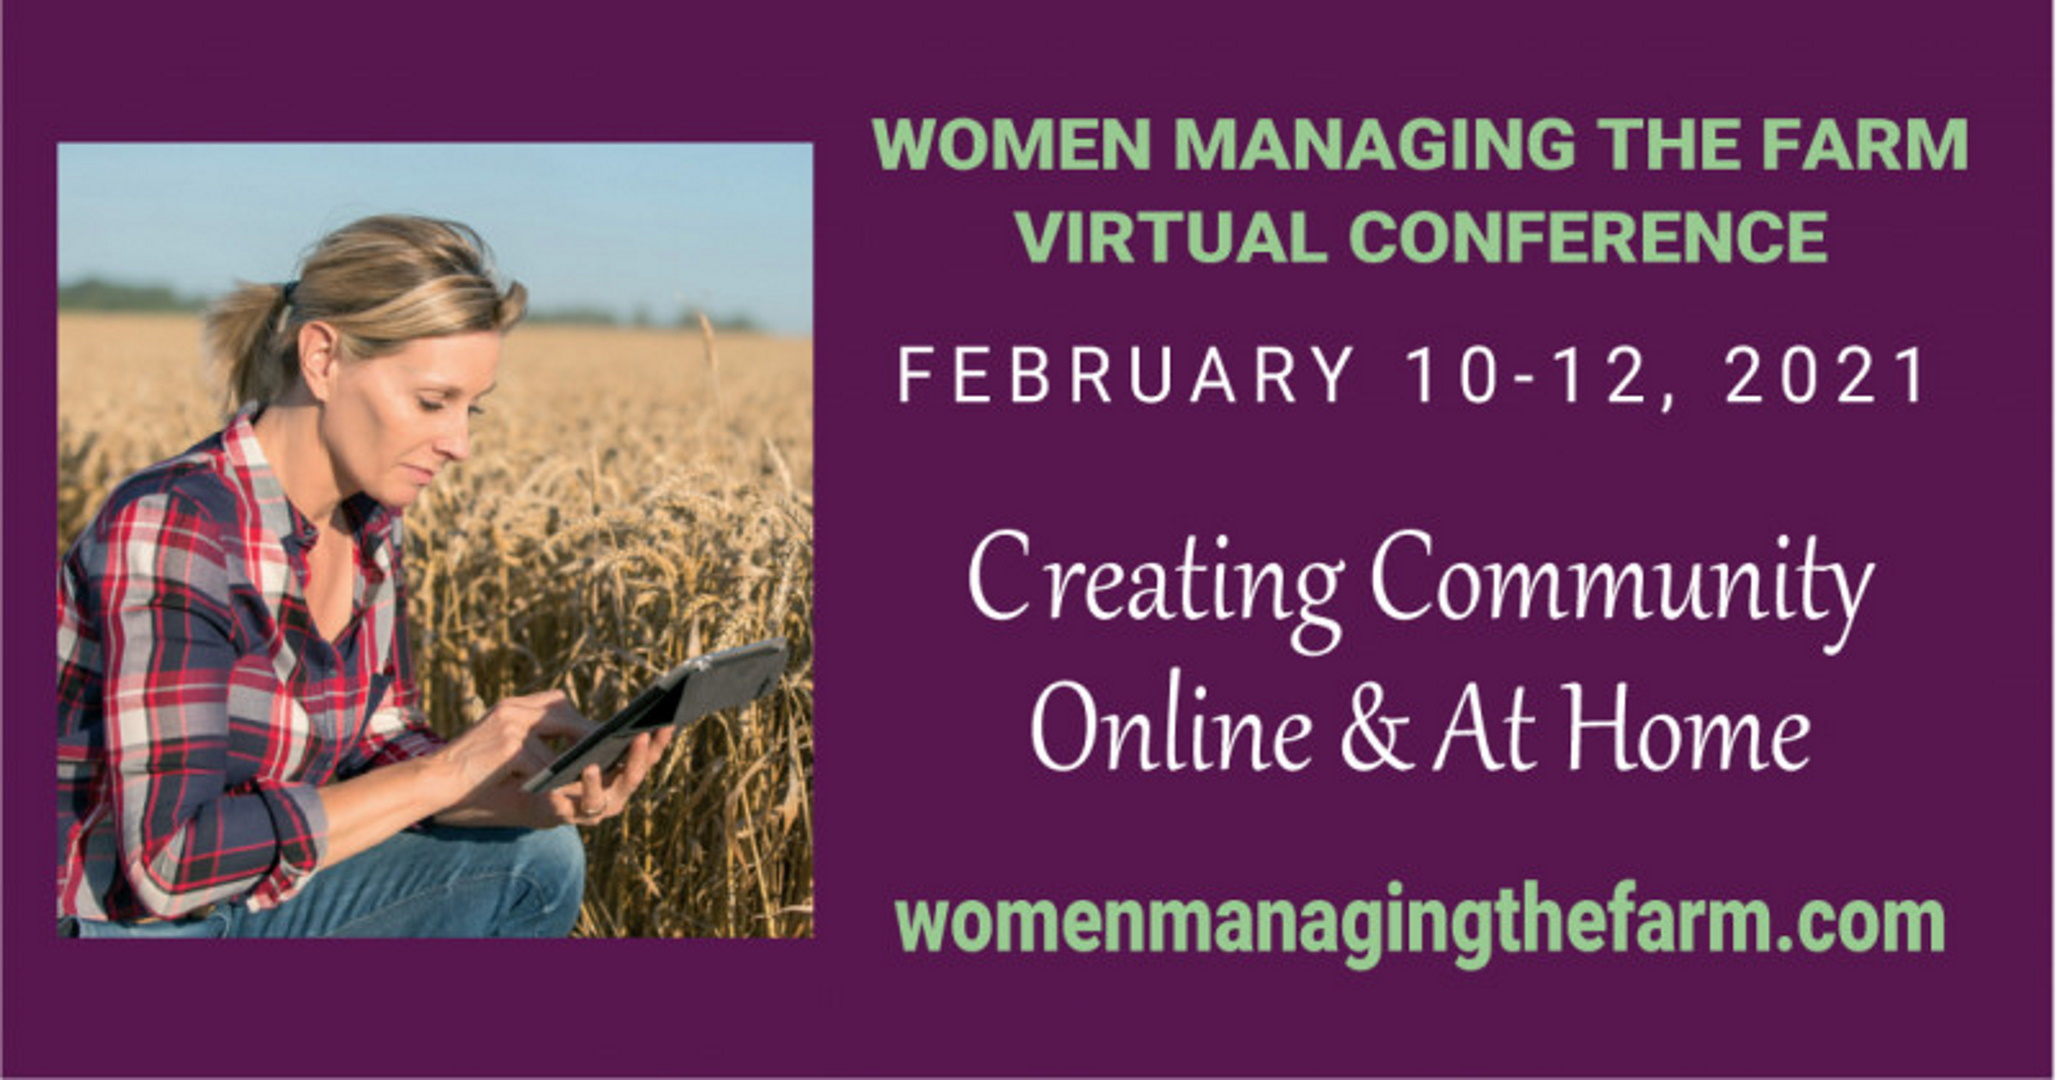 Women Managing the Farm Virtual Conference February 10 - 12, 2021